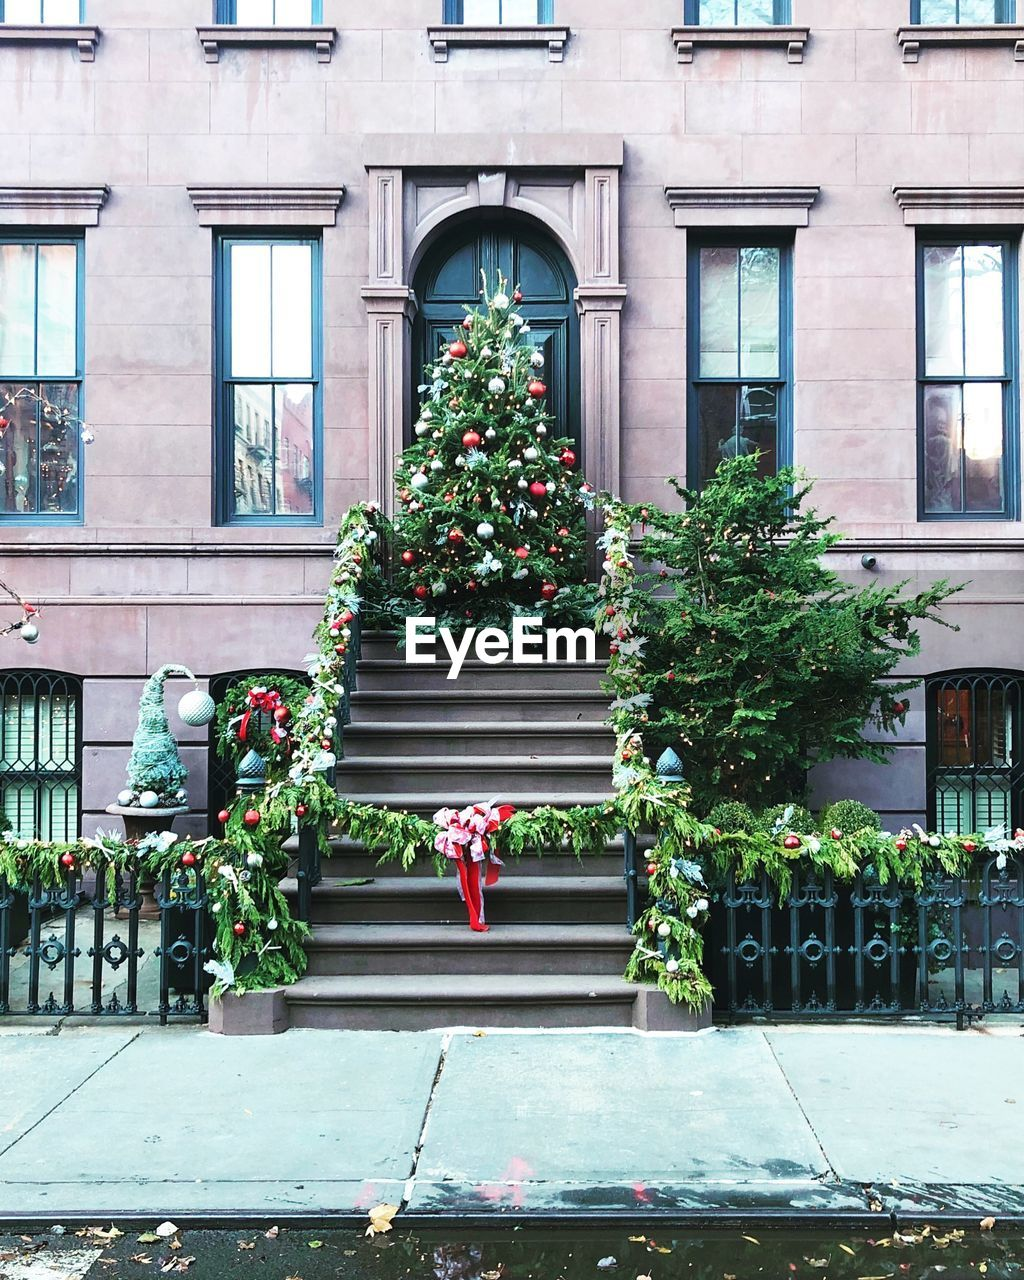 building exterior, architecture, built structure, christmas, plant, decoration, tree, window, celebration, building, christmas tree, nature, day, christmas decoration, holiday, outdoors, no people, potted plant, event, christmas ornament